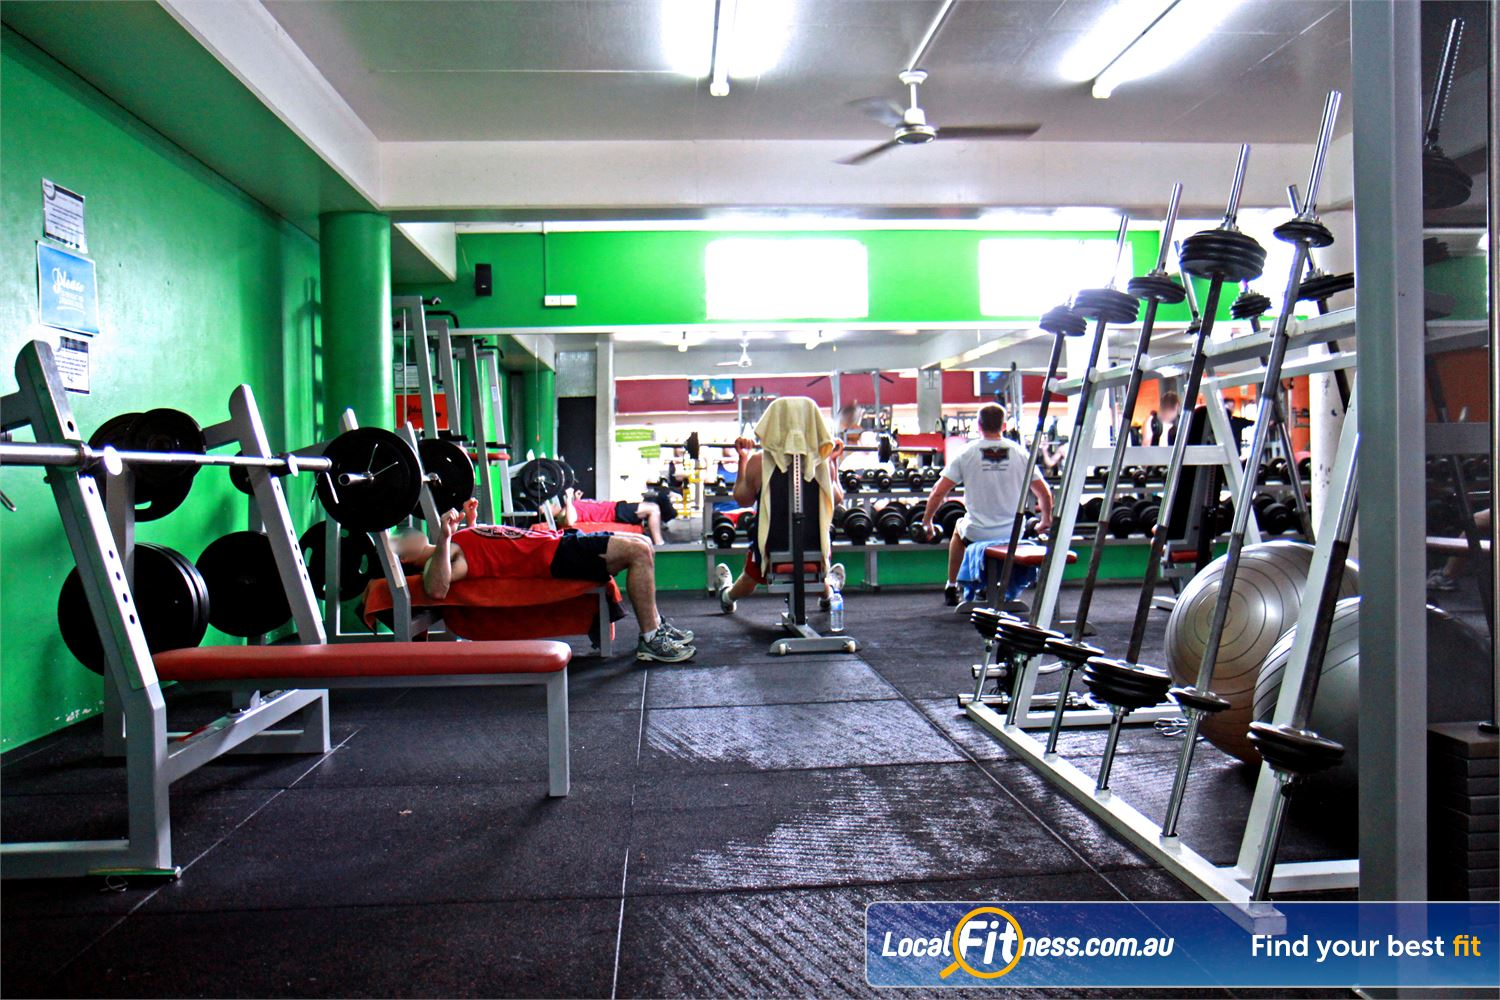 Goodlife Health Clubs Morningside Our Morningside gym includes a comprehensive range of dumbbells and barbells.